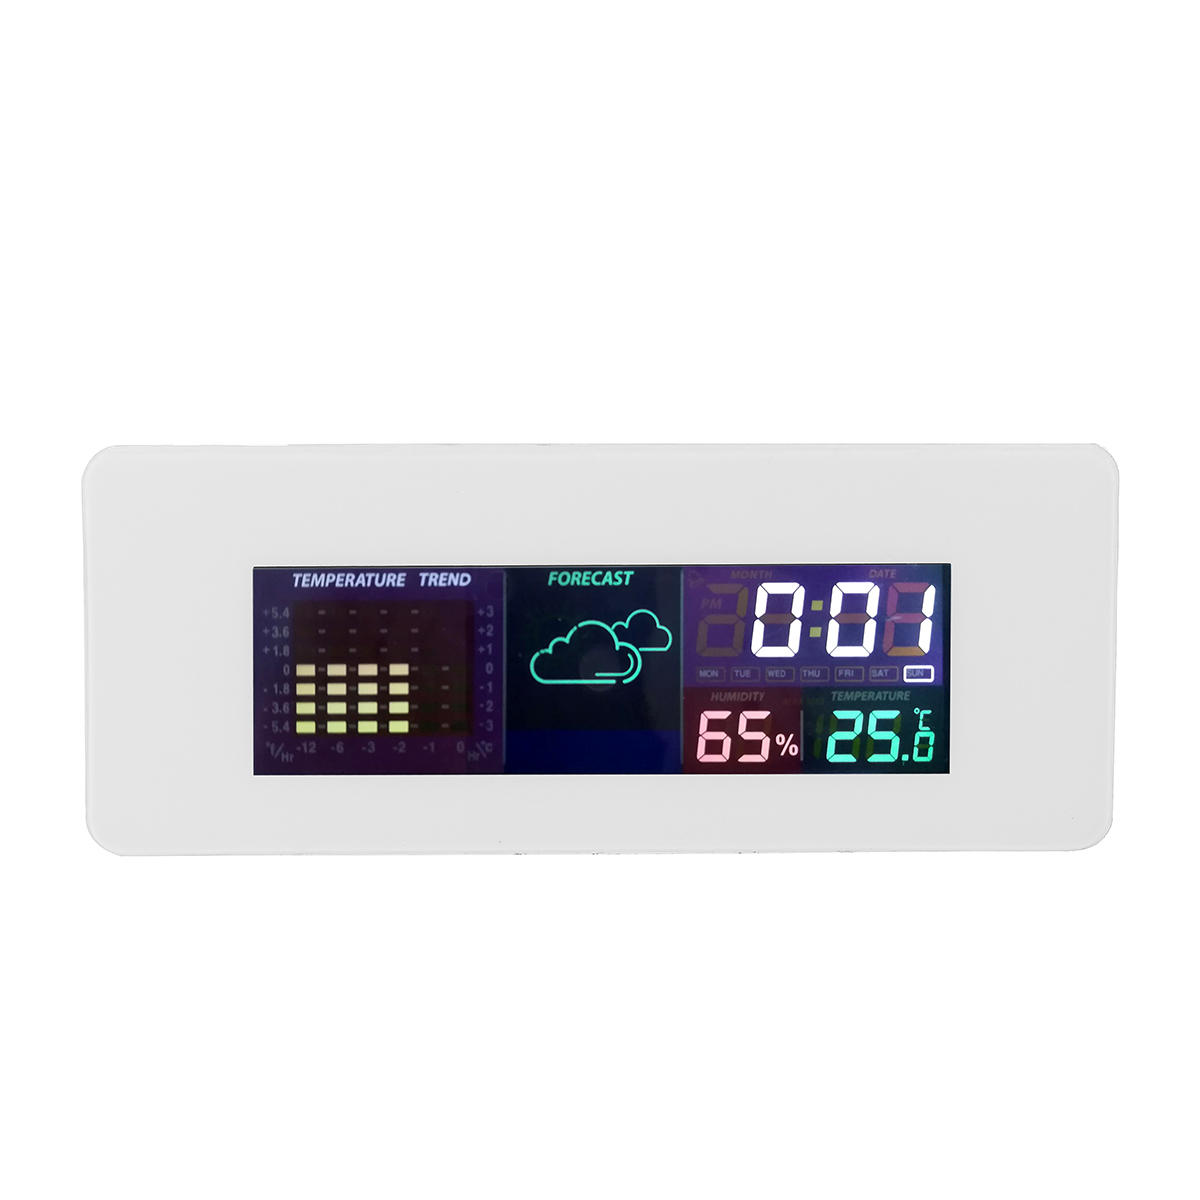 Multi-function Color Screen Temperature Humidity Meter Hygrometer Monitor Clock with Calendar Alarm Clock 12/24 Hour Sys